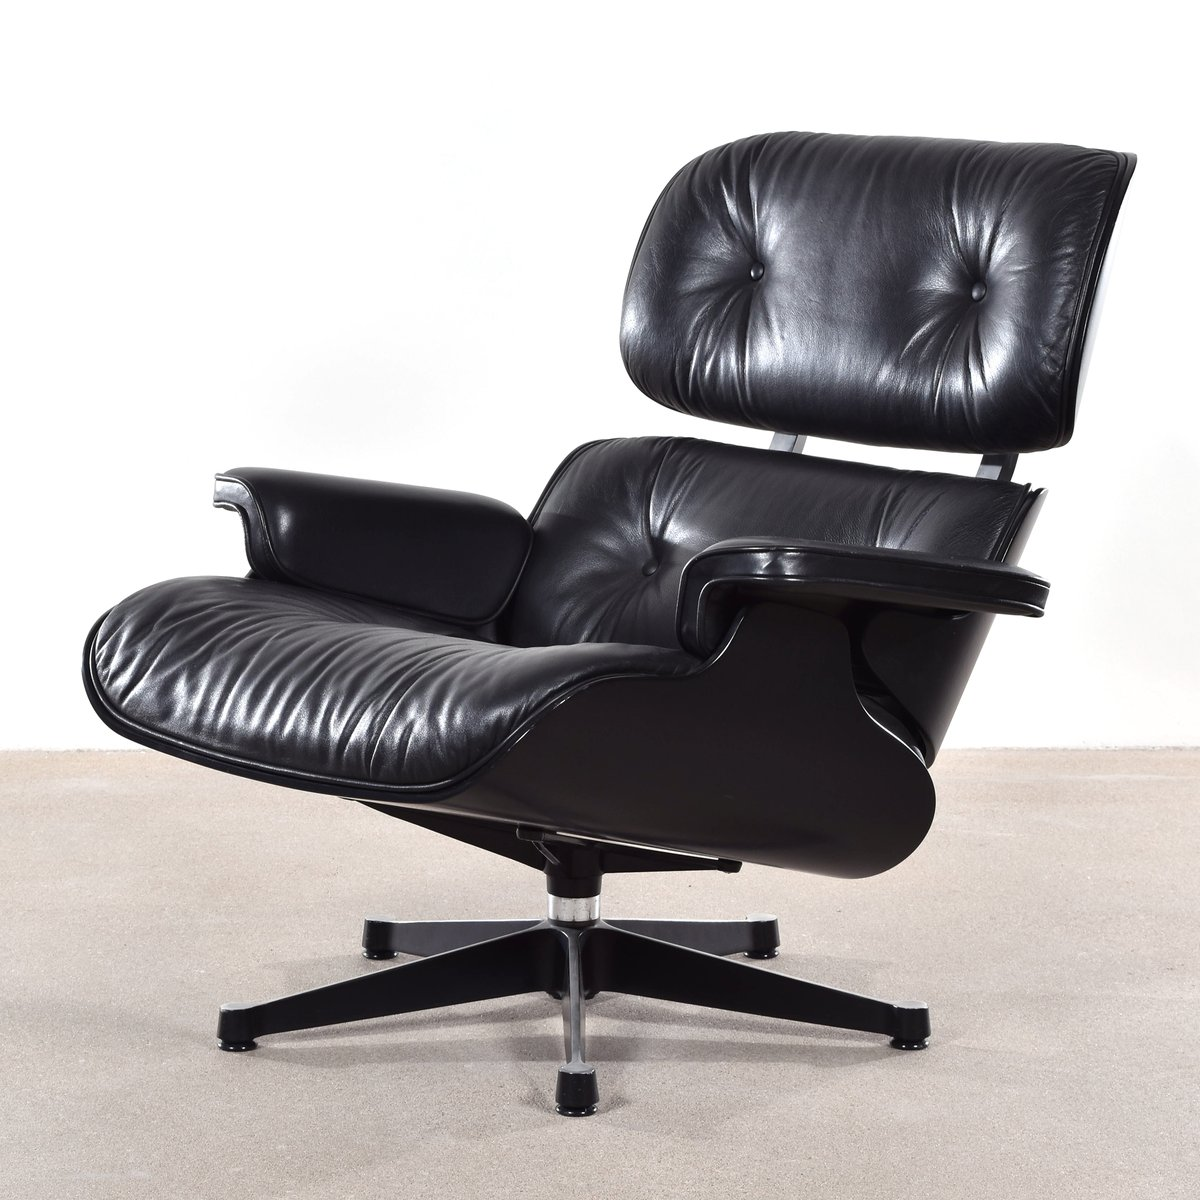 German lounge chair by charles ray eames for vitra 1988 for Charles eames lounge chair nachbildung